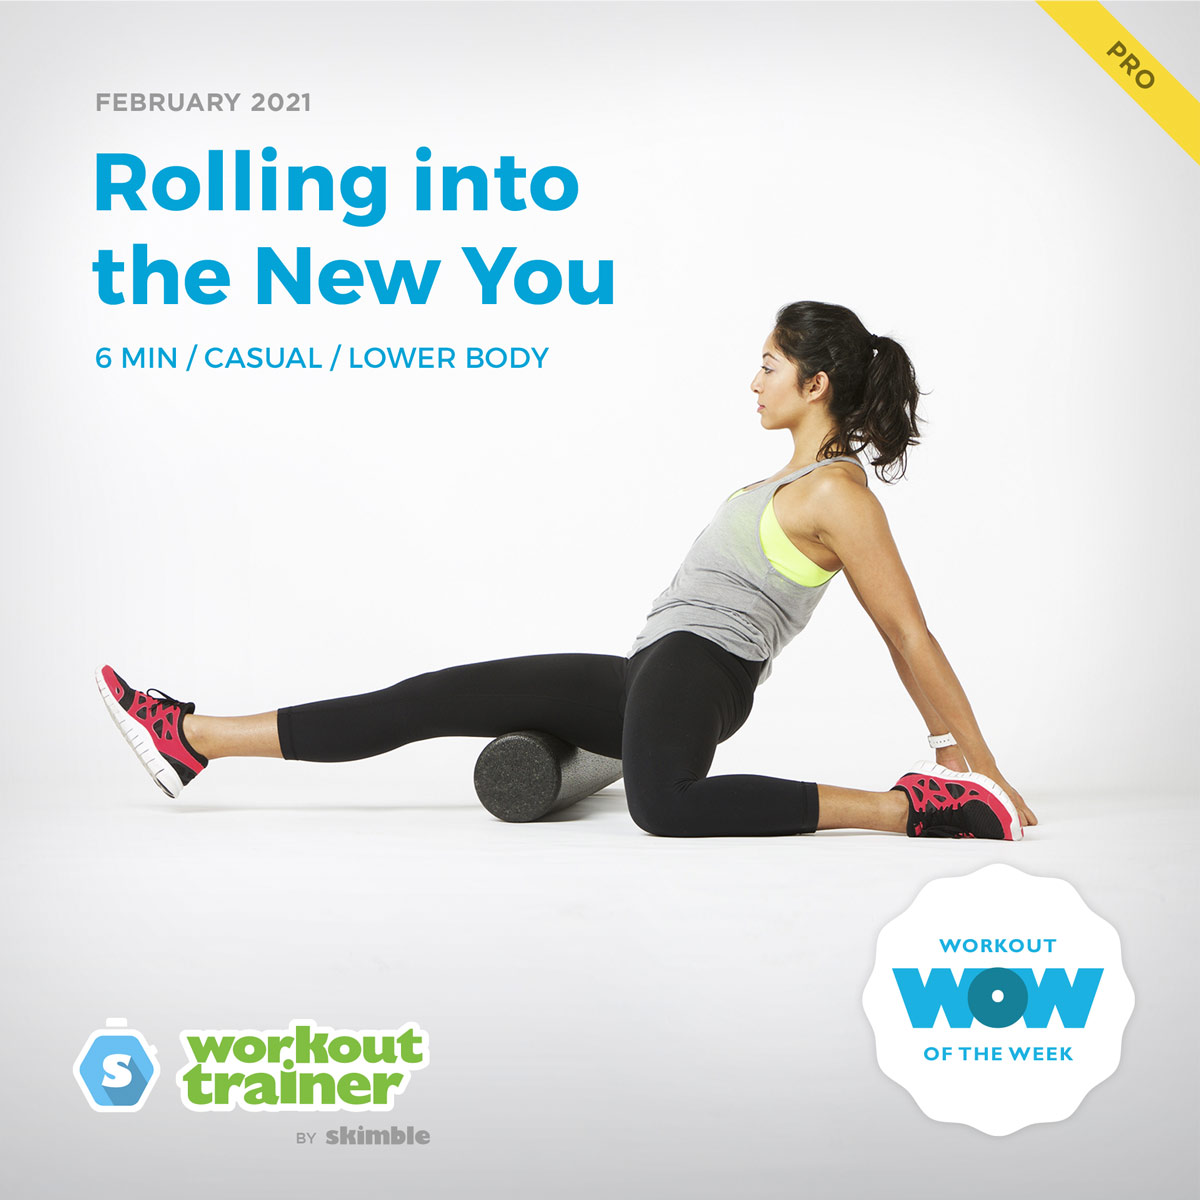 Female Fitness Instructor stretching legs on a foam roller